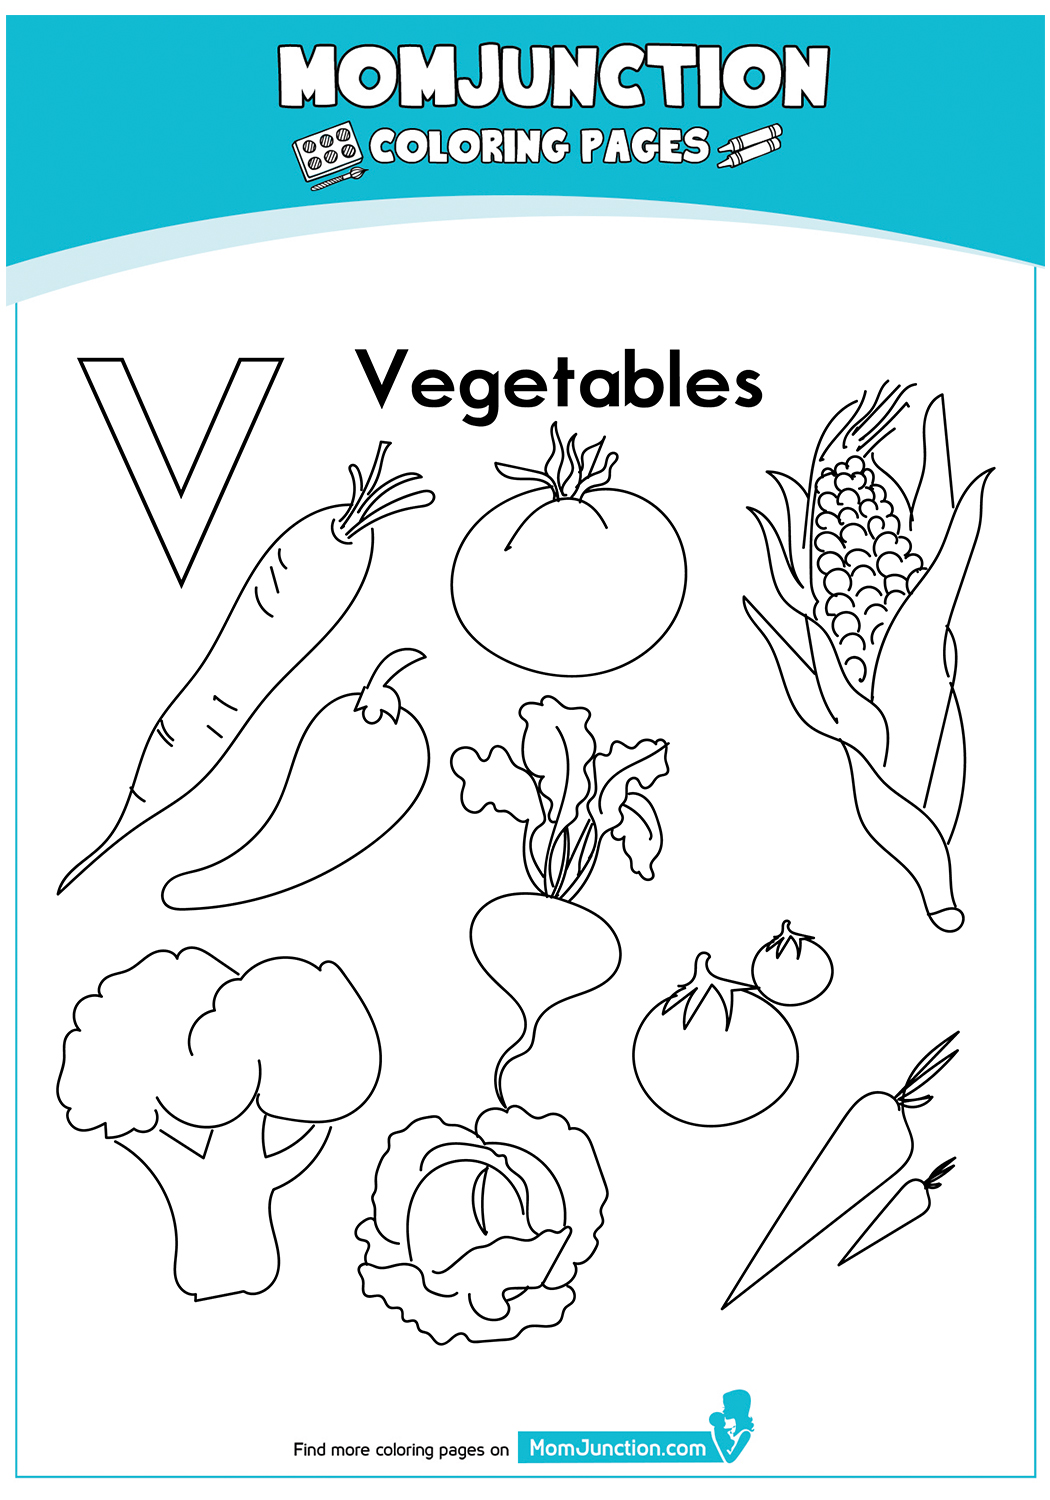 The-Vegetables-17